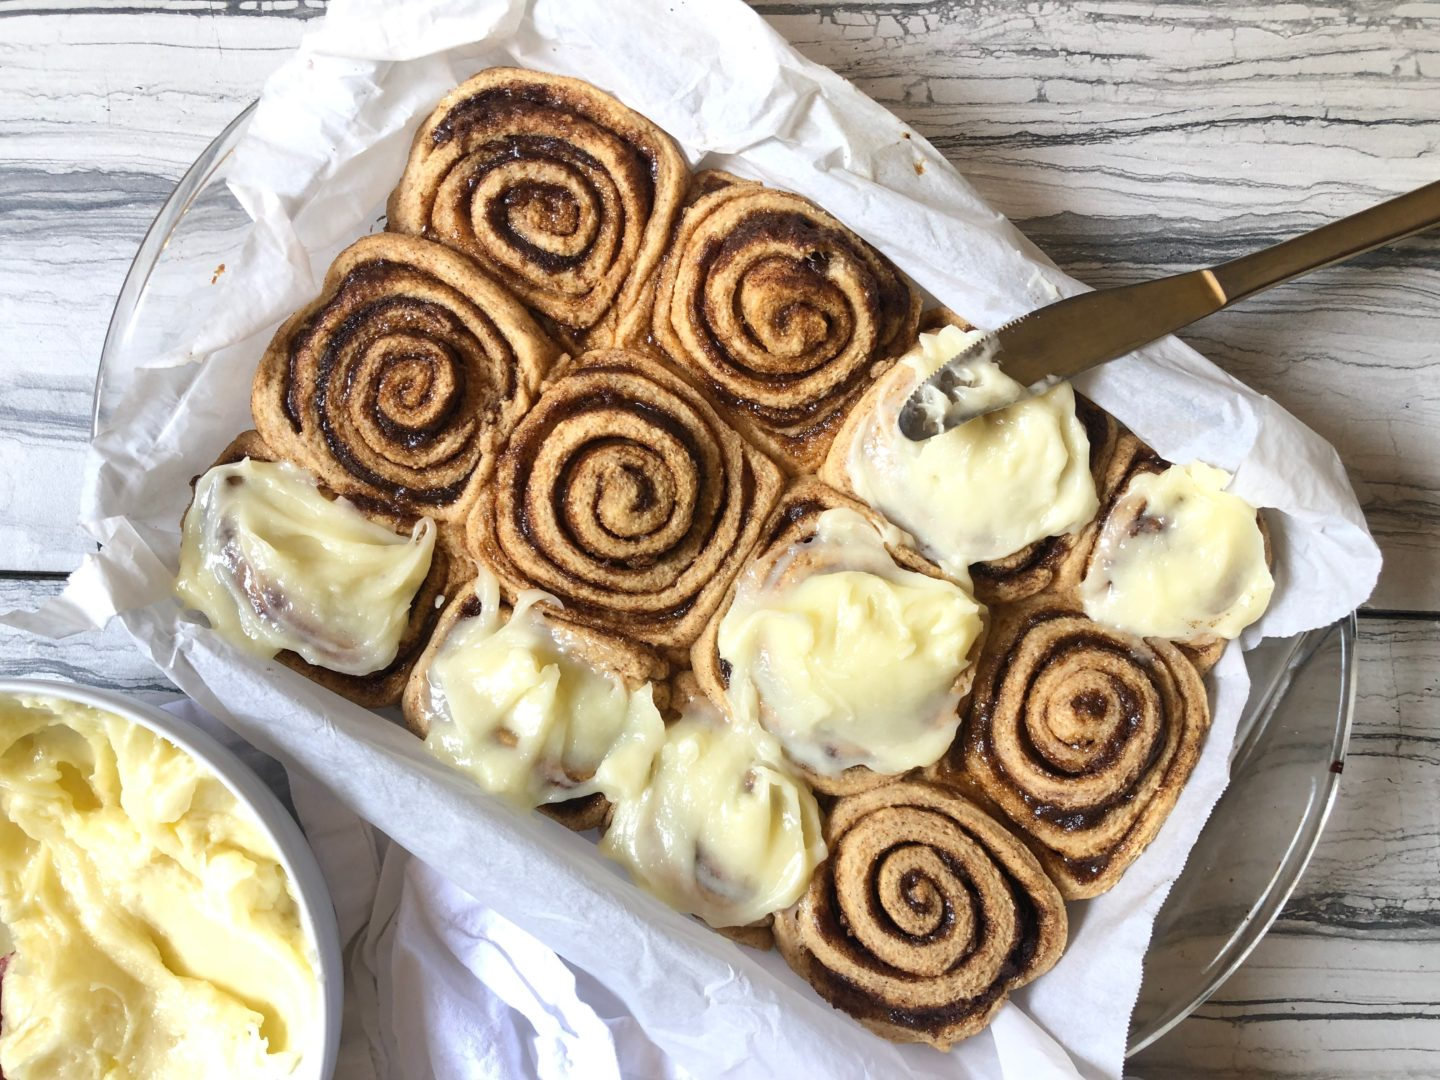 Lifestyle Blogger Chocolate & Lace shares her recipe for Cream Cheese Frosted Cinnamon Rolls.